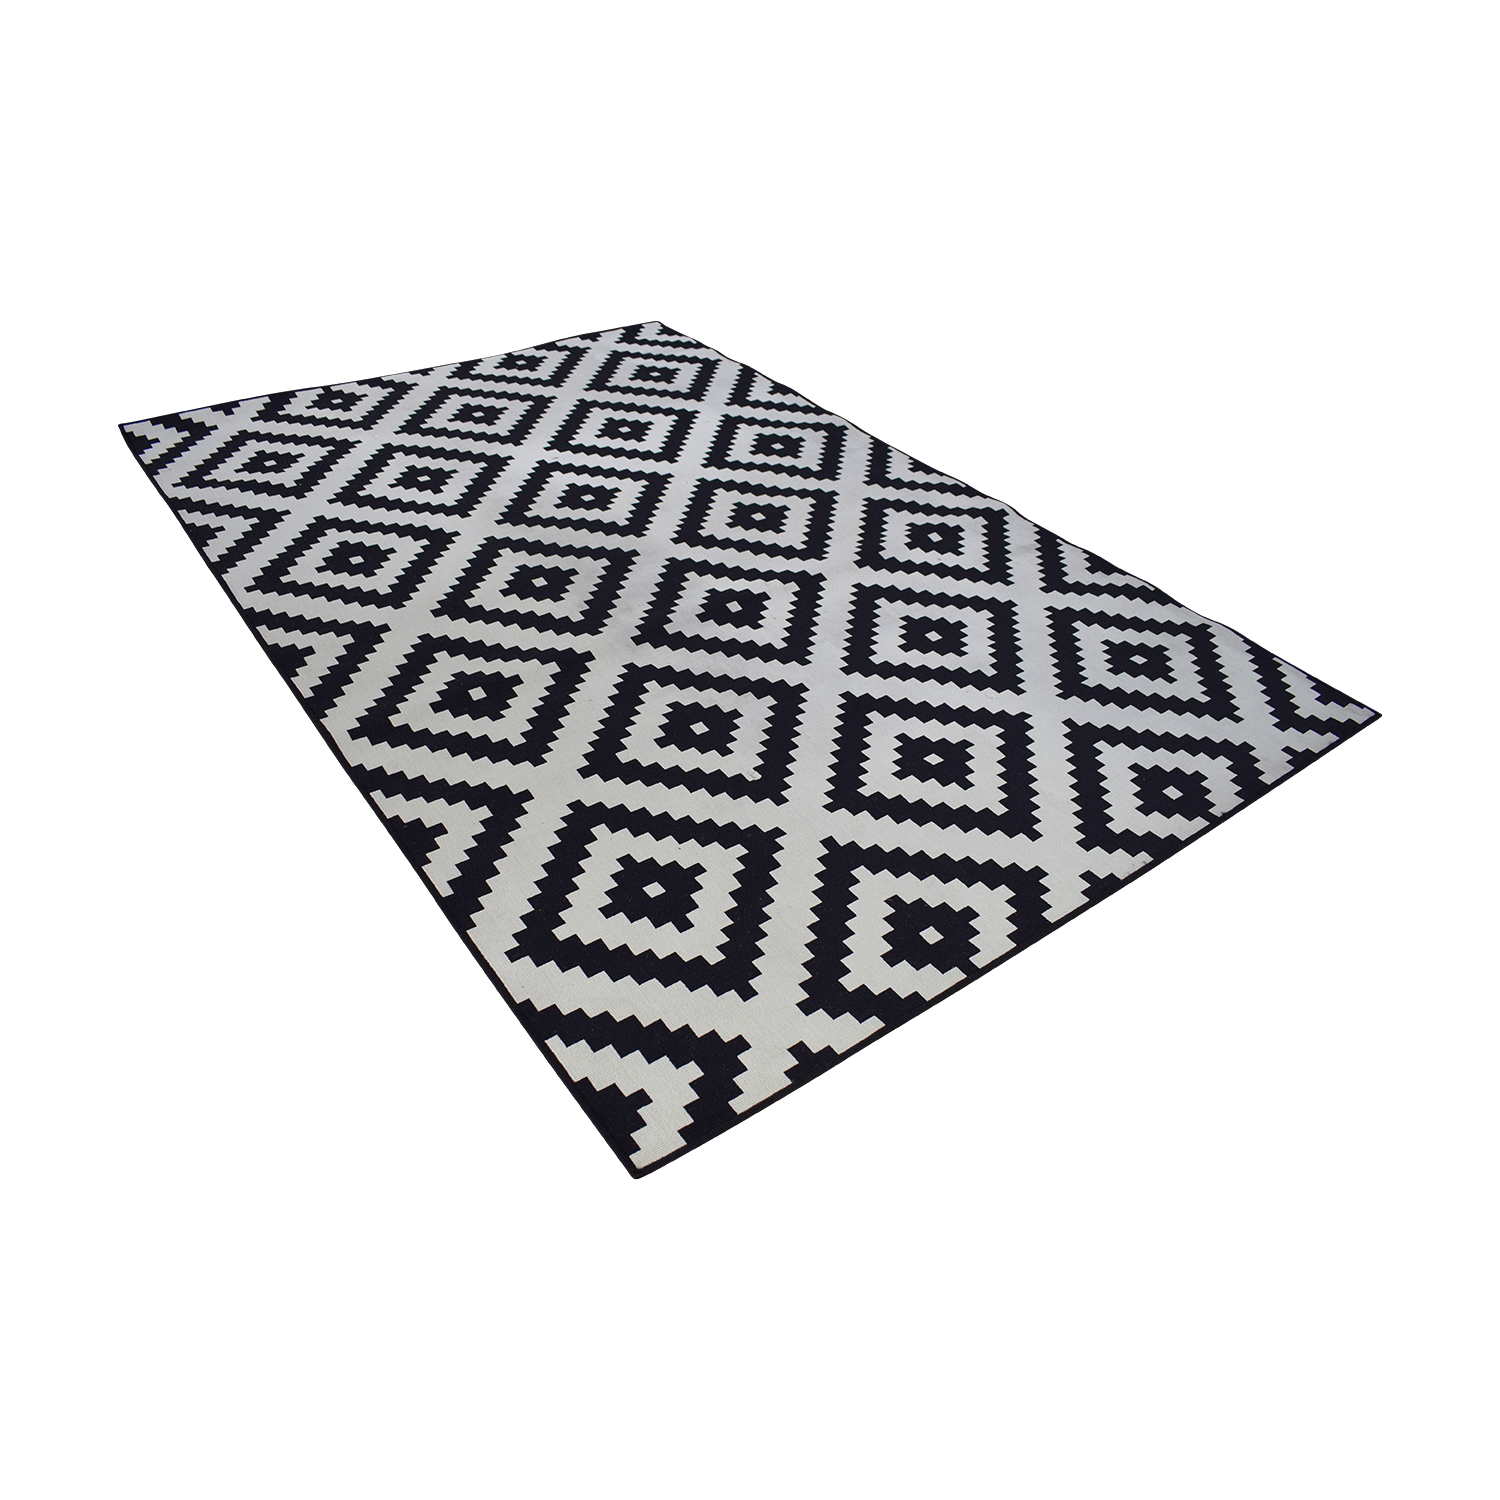 buy IKEA IKEA Lappljung Ruto White & Black Diamond Shape Rug online